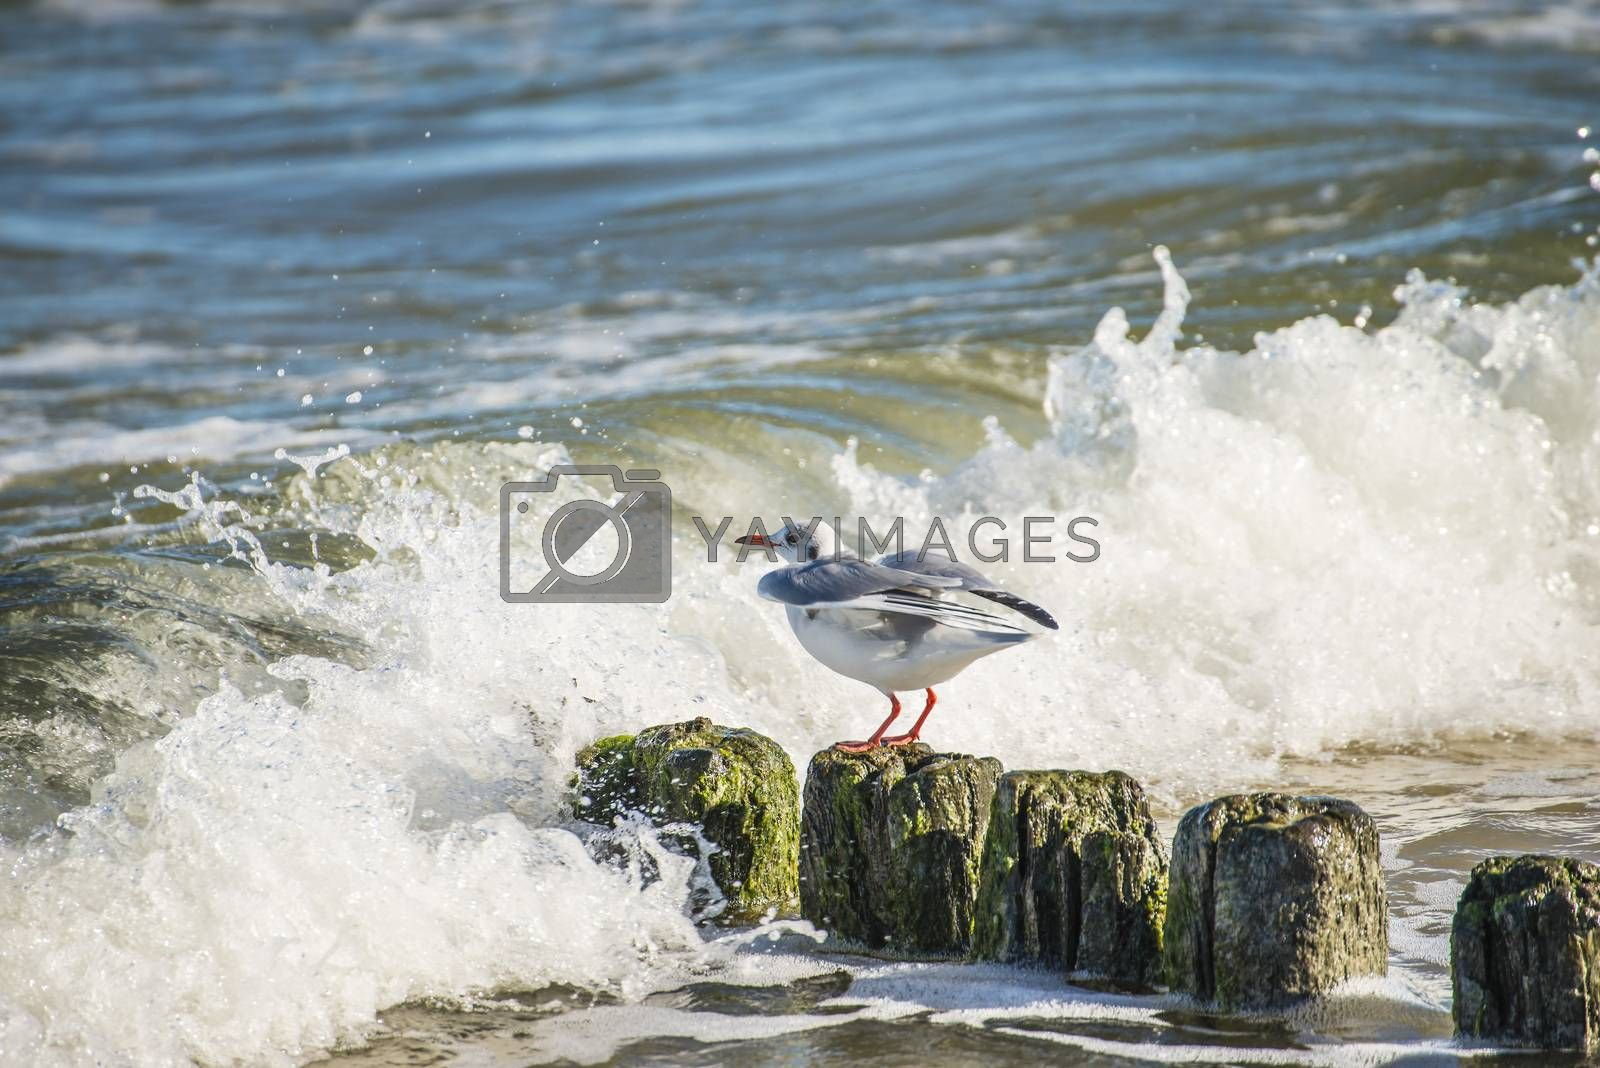 Black-headed gull on groynes in the Baltic Sea by Jochen